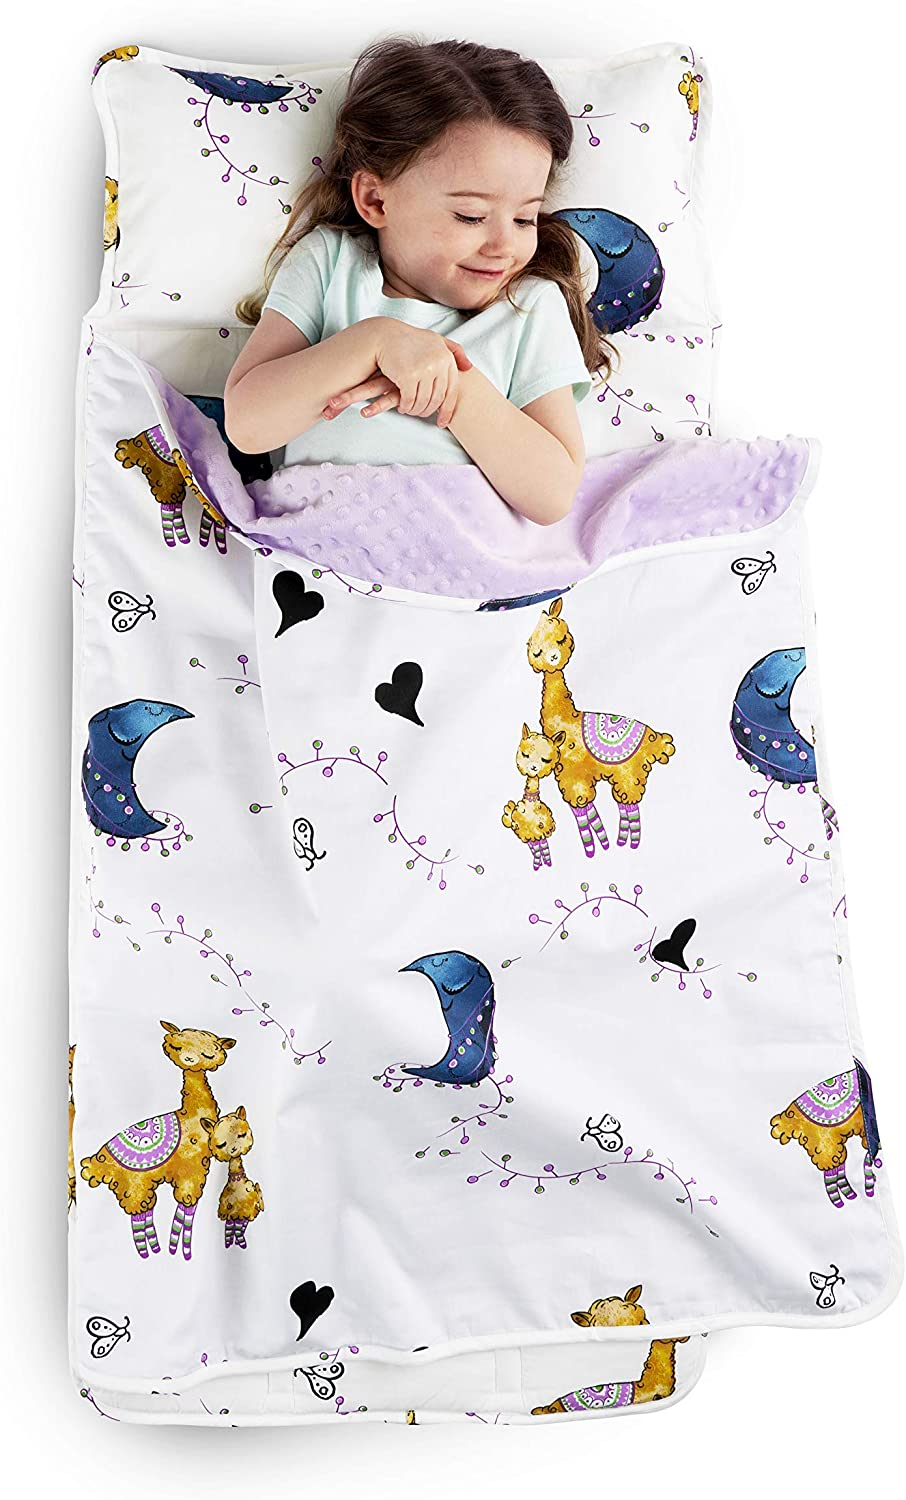 JumpOff Jo - Toddler Nap Mat - Children's Sleeping Bag with Removable Pillow for Preschool, Daycare, and Sleepovers - Measures 43 x 21 Inches with Original Design